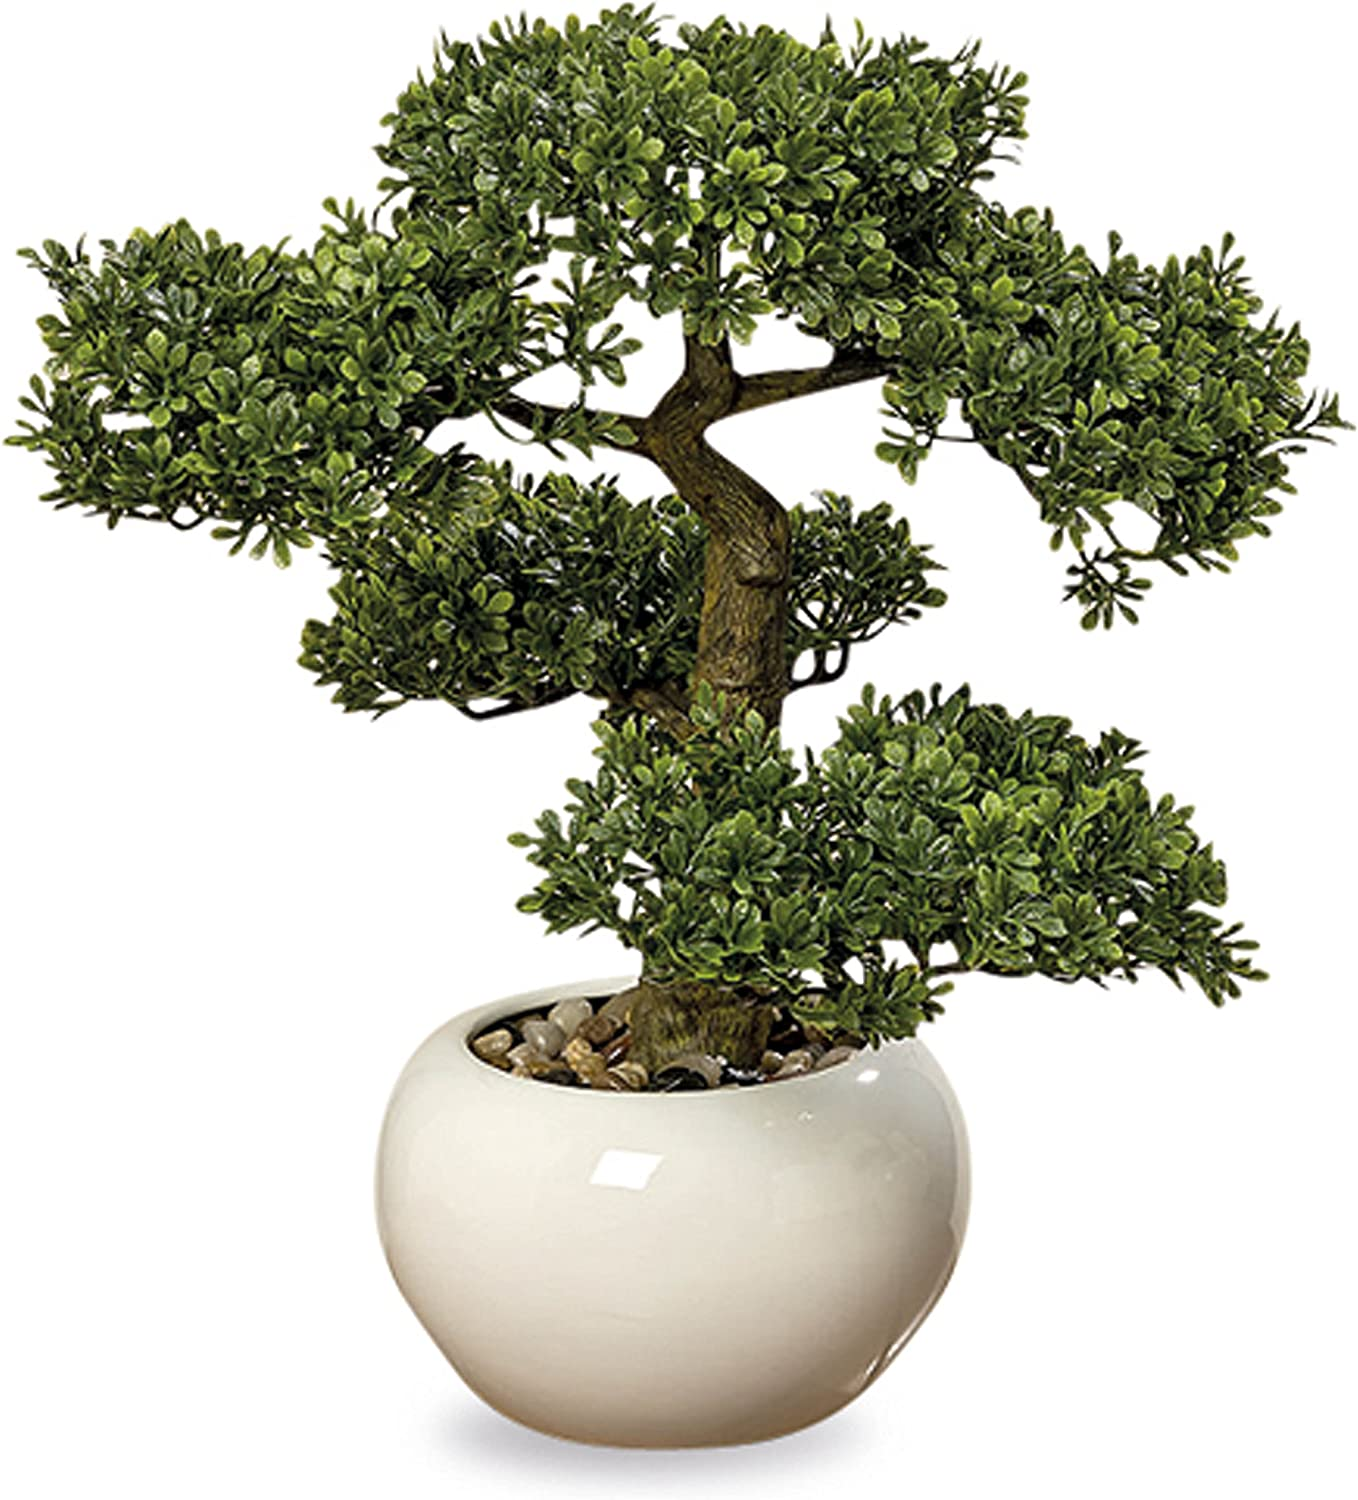 Amazon Com Whw Whole House Worlds Realistic Faux Harland Boxwood Bonsai Tree Houseplant White Round Pot Pebbles Padded Bottom Over 1 Ft Tall H33cm Home Kitchen